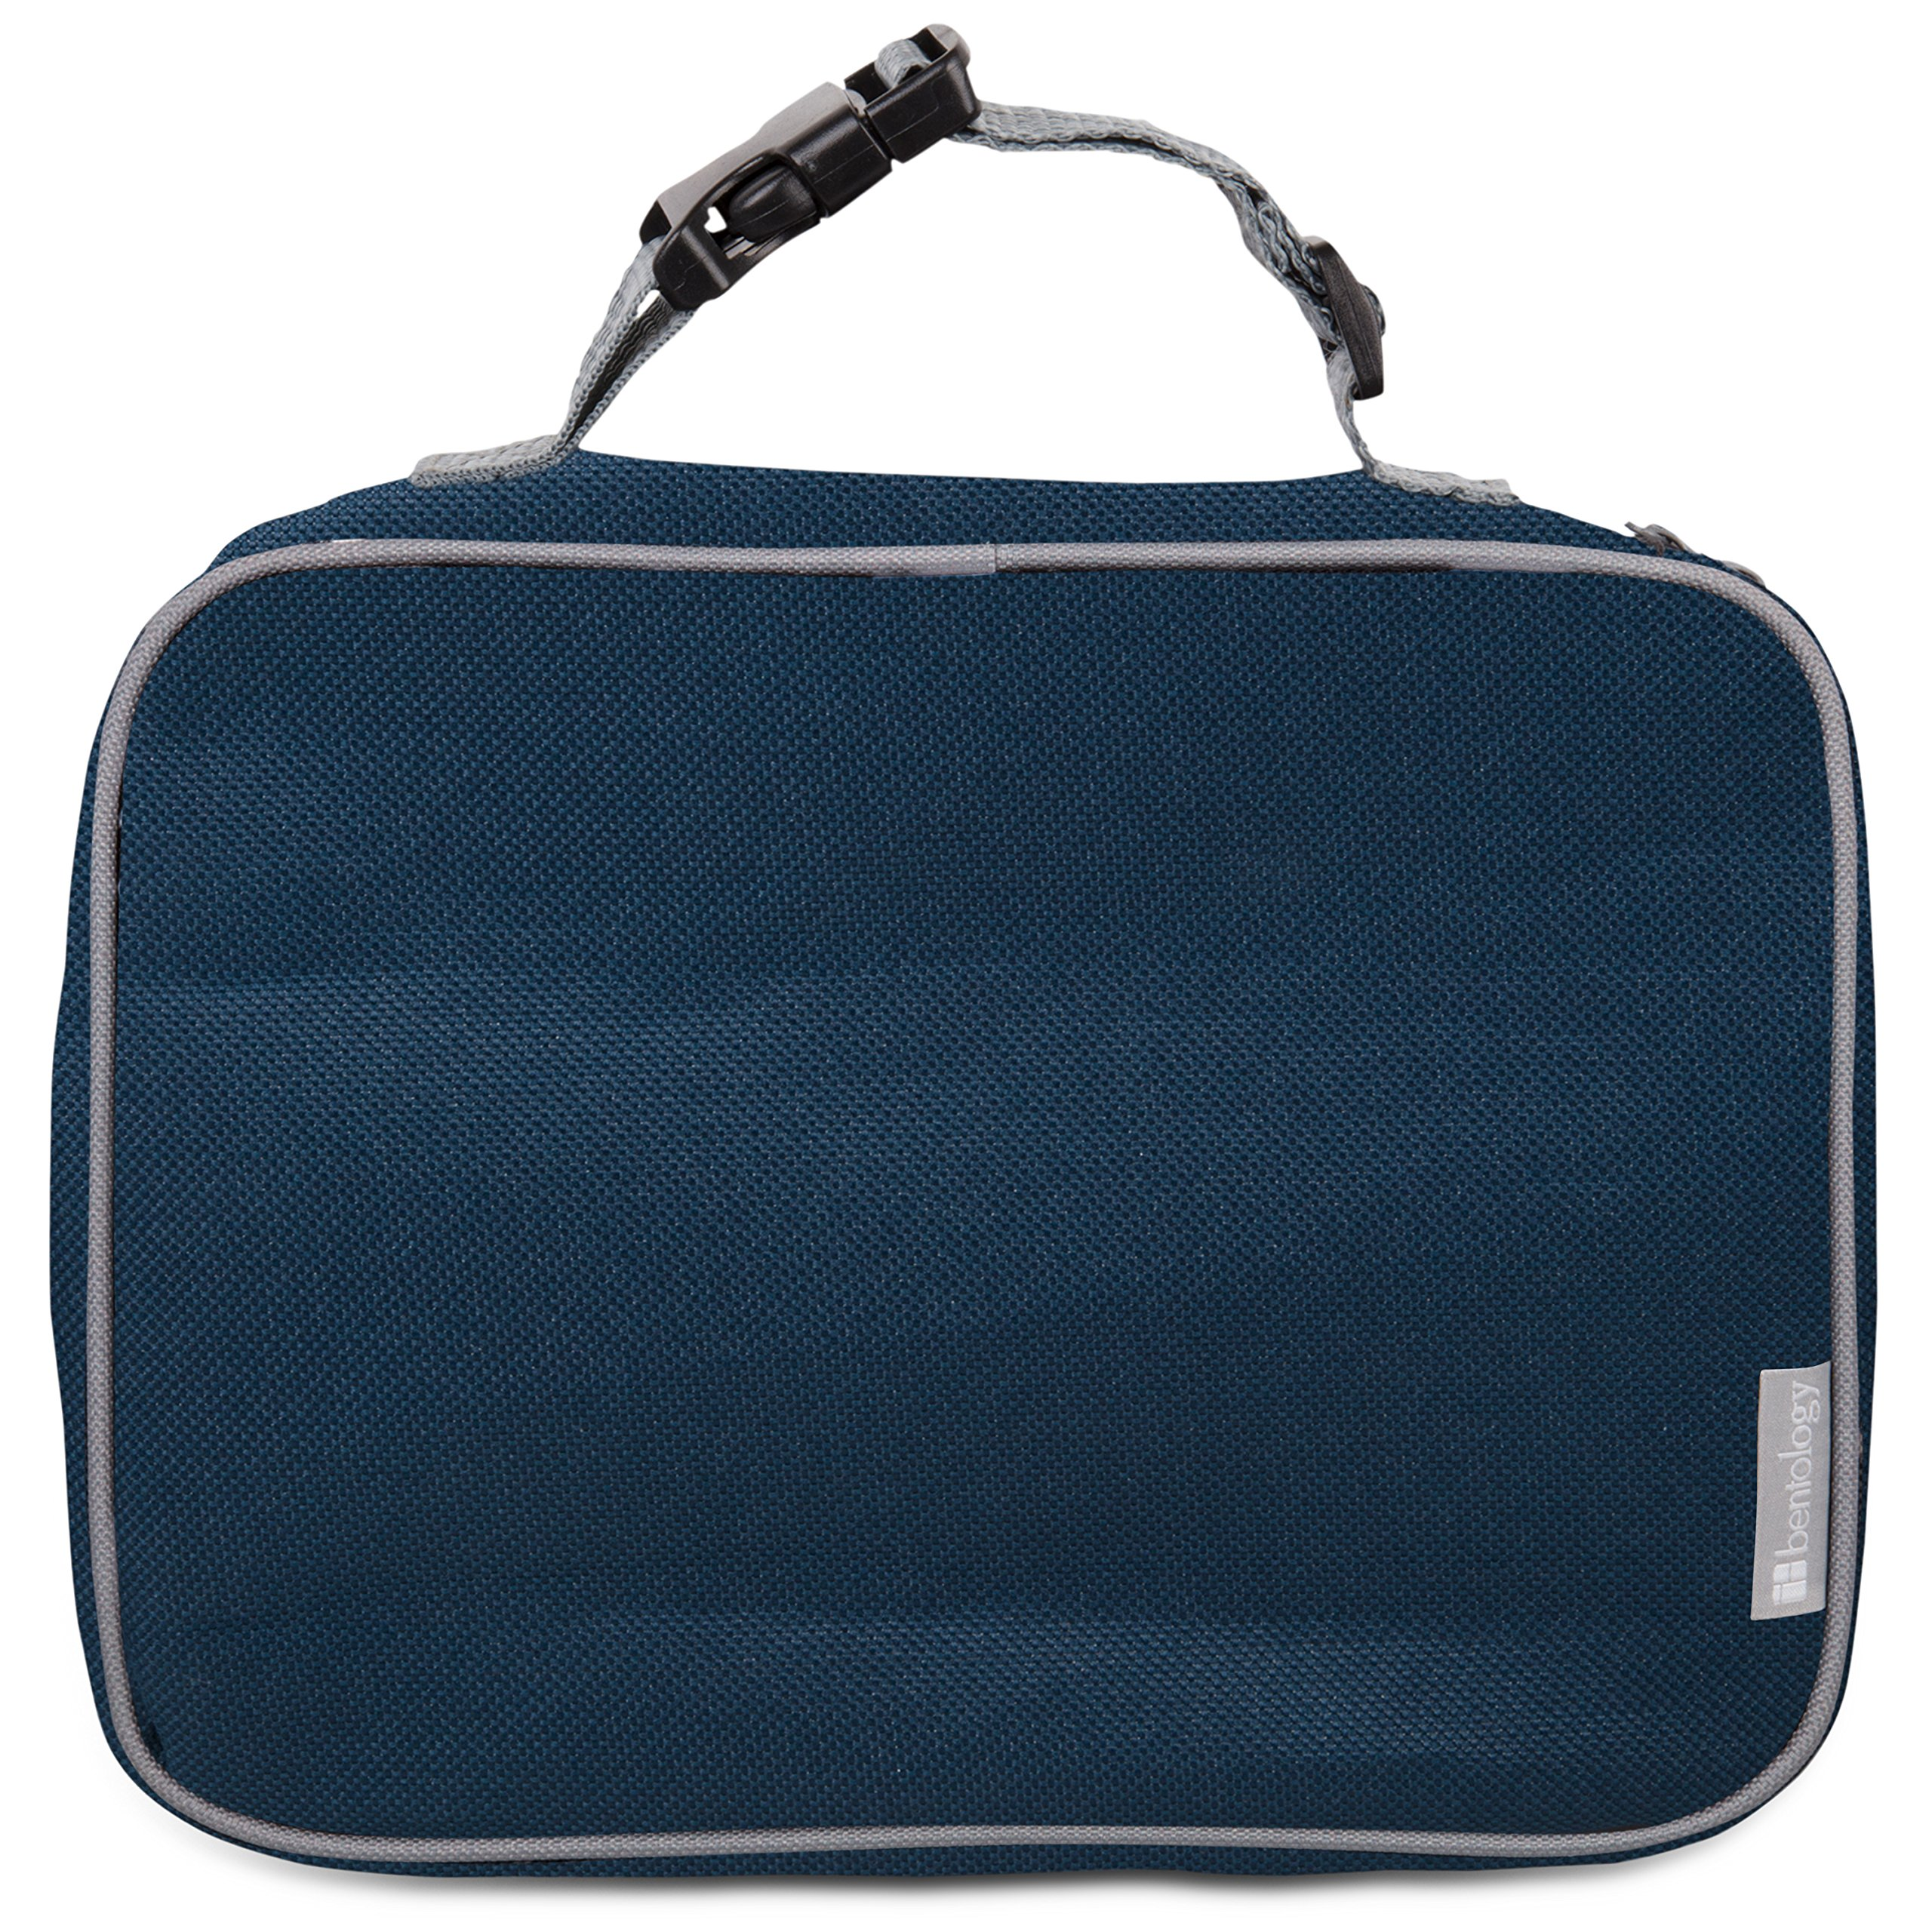 "Insulated Durable Lunch Box Sleeve - Portion Perfect Reusable Lunch Bag - Securely Cover Your Bento Box, Works with Bentology Bento Box, Bentgo, Kinsho, Yumbox (8""x10""x3"") - Blue/Gray"